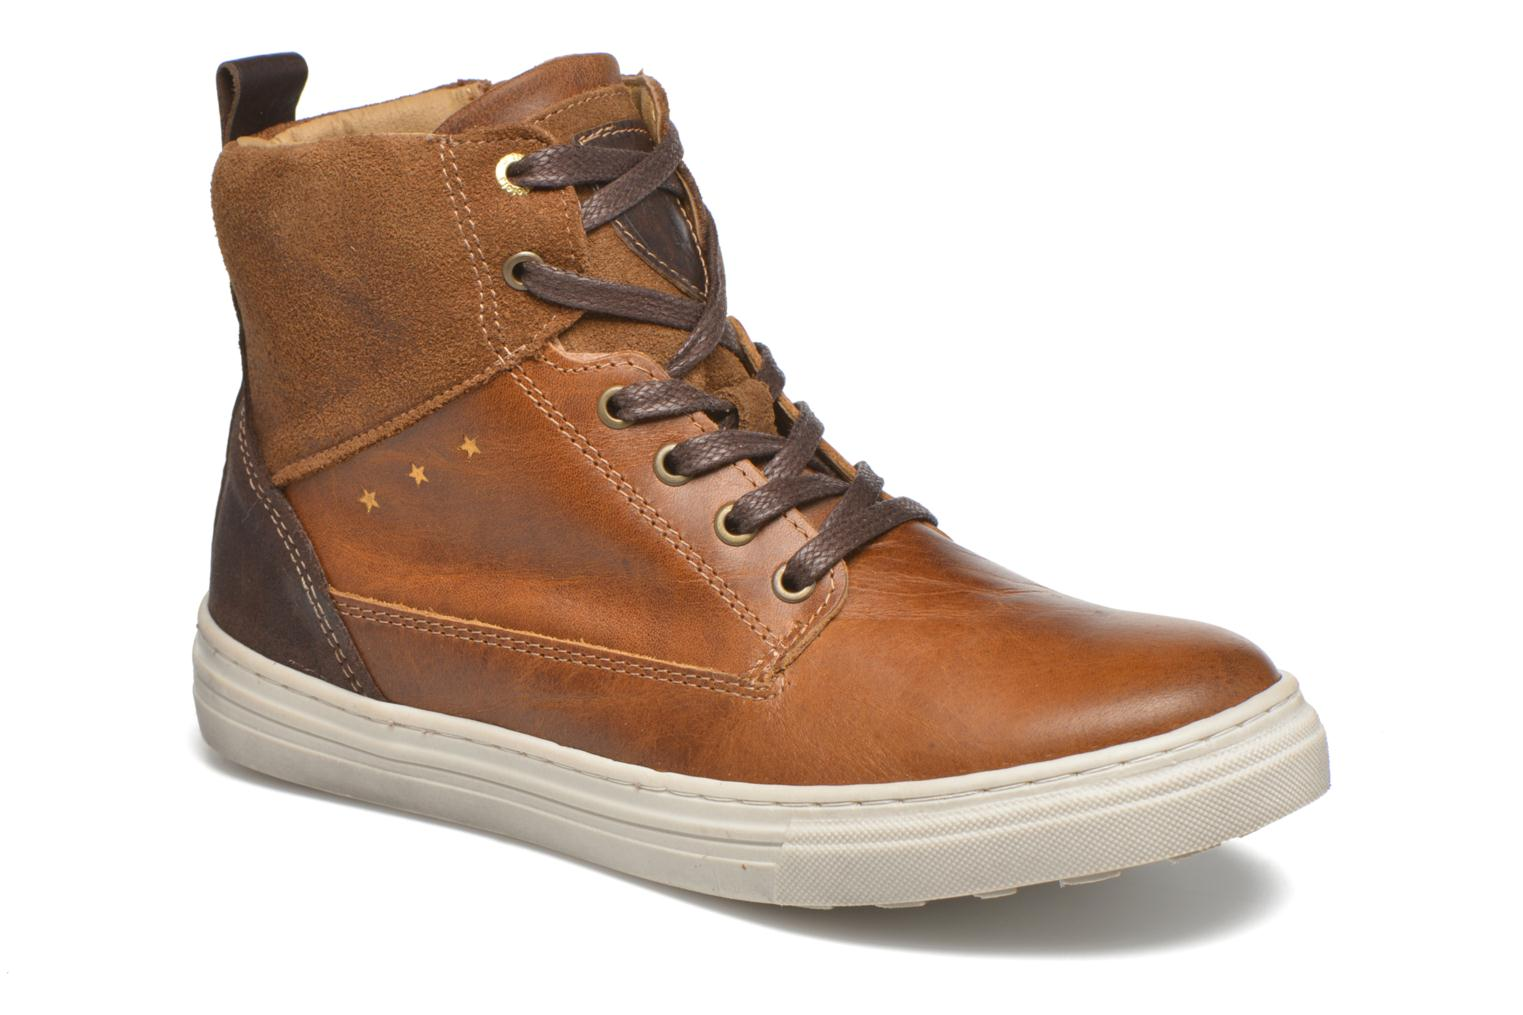 Sneakers Benevento II mid JR by Pantofola d'Oro